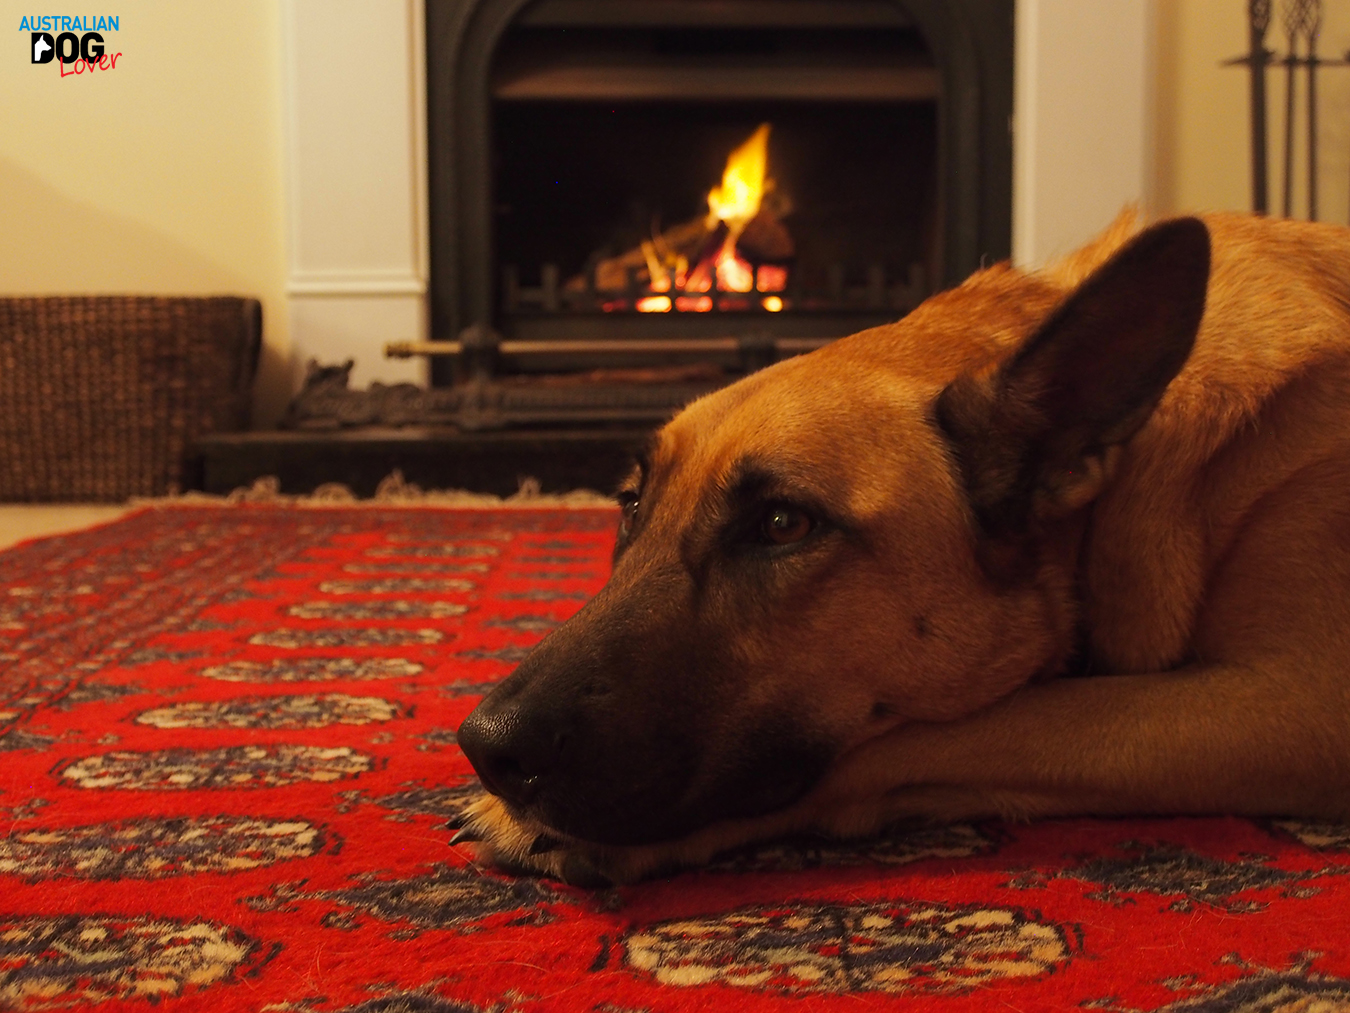 Belgian Malinois lying down on a rug by the fireplace during Australian winter